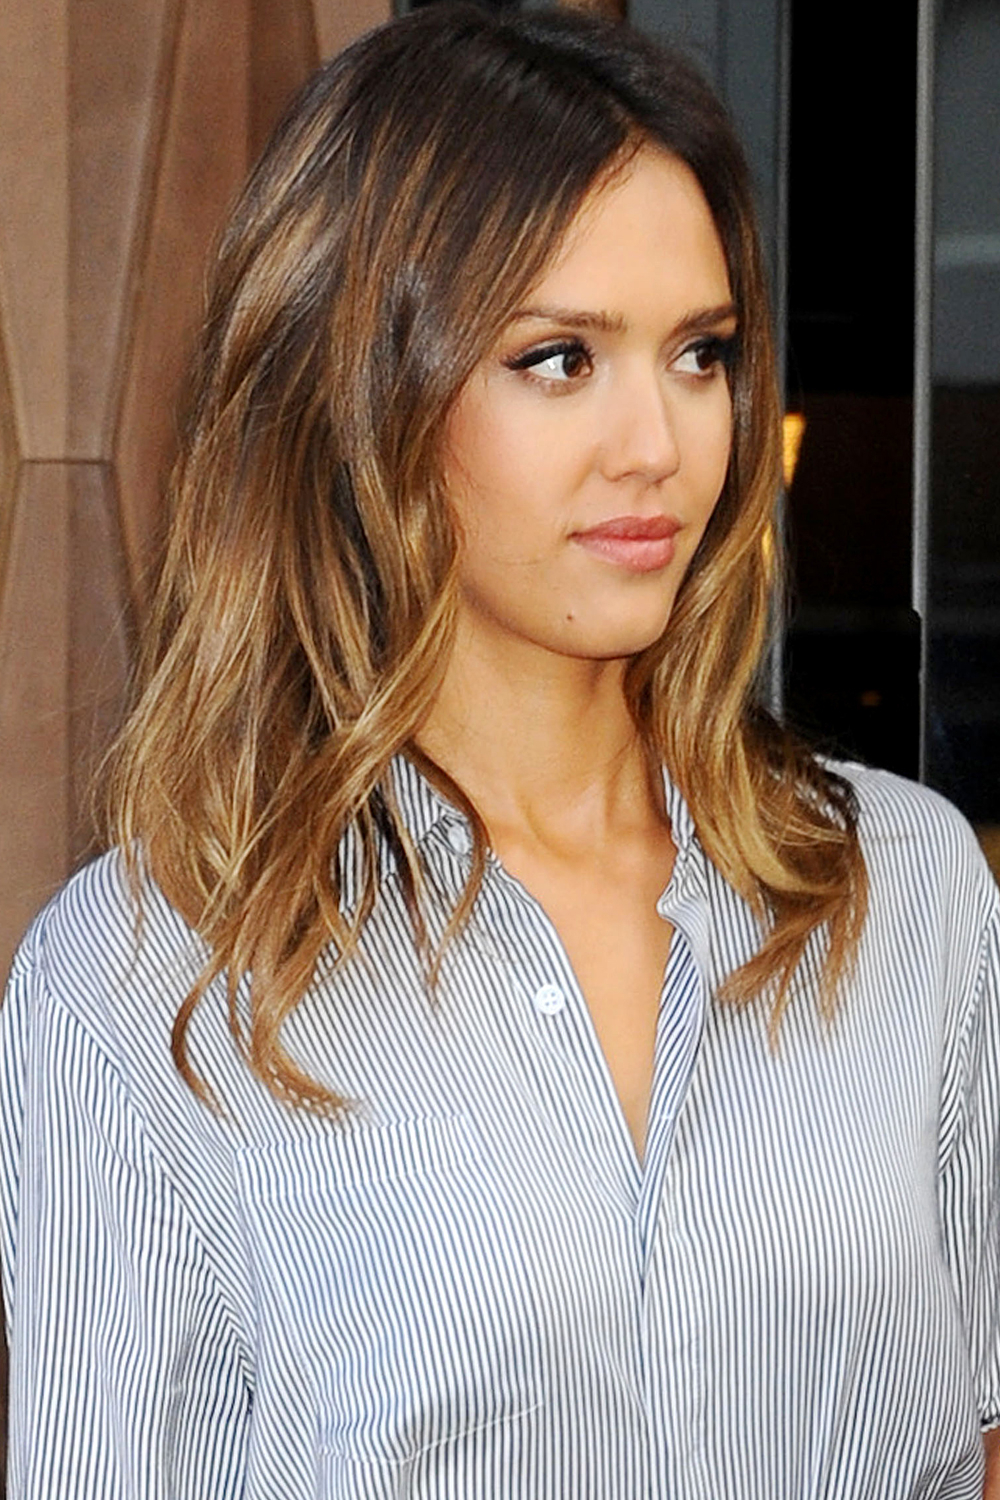 Jessica Alba Short Hair 2015 – Hairstyles 2018 pertaining to Jessica Alba Short Hairstyles